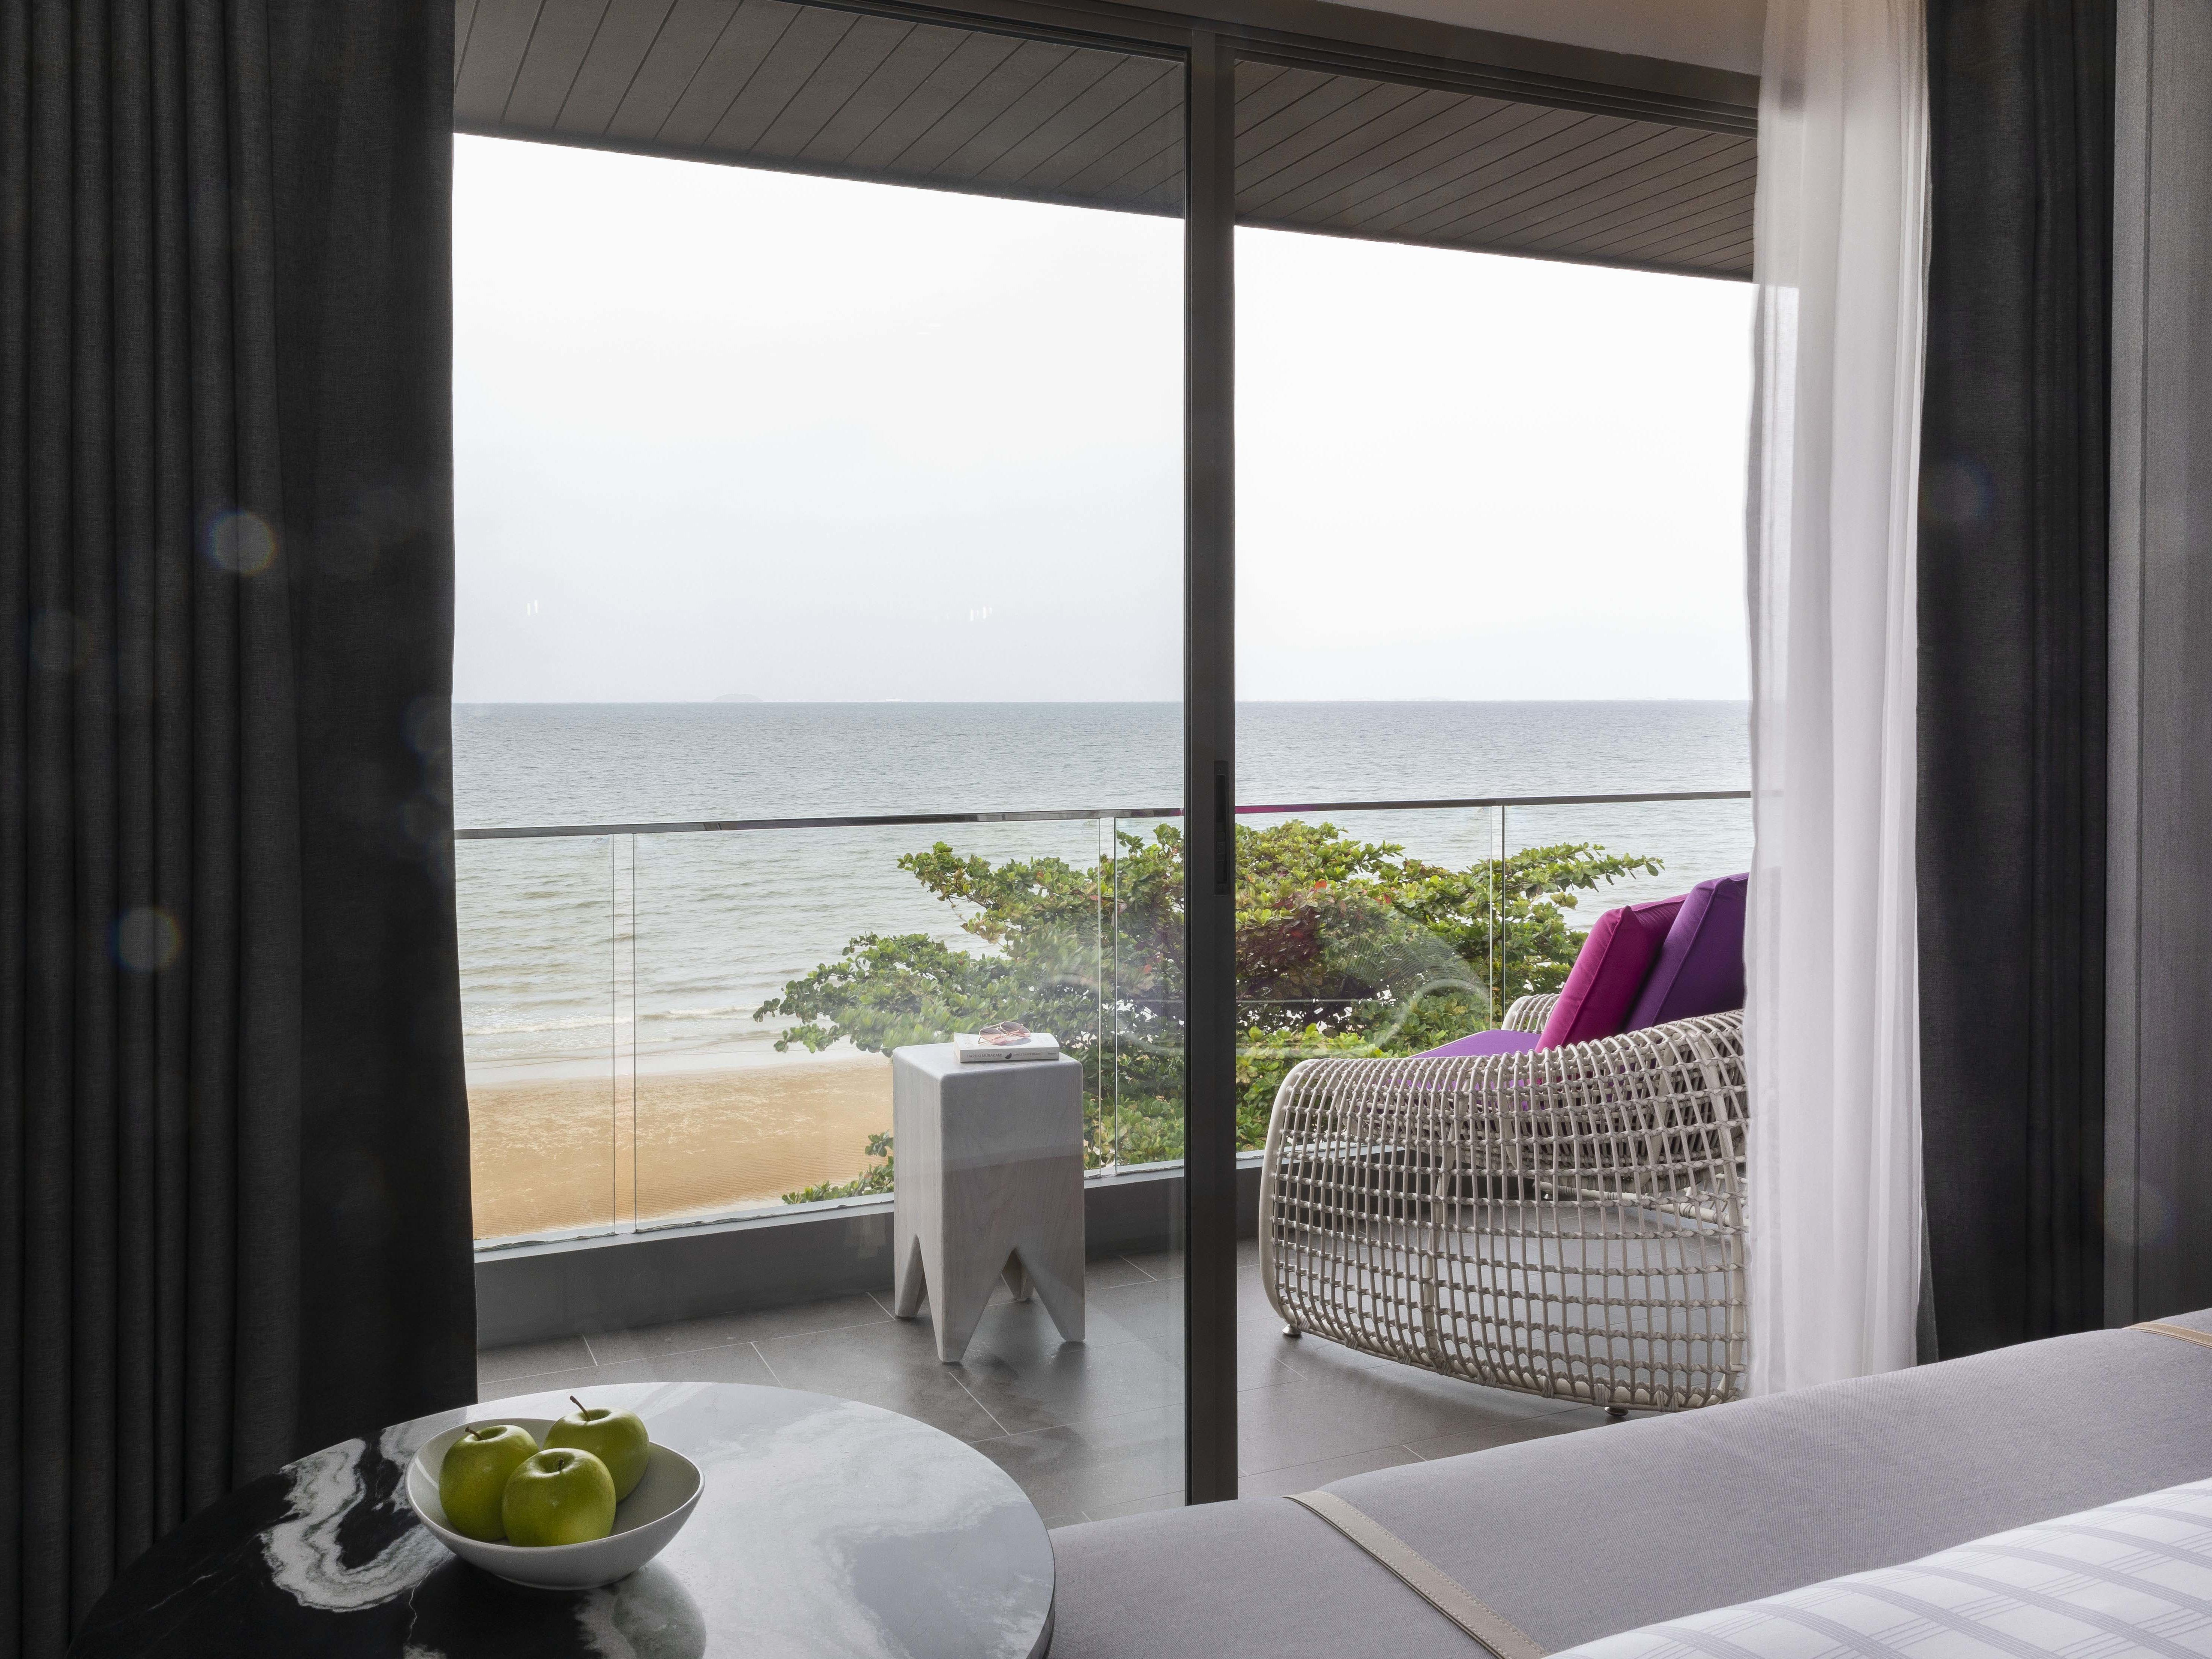 Deluxe Panoramic Seaview room at U Hotels and Resorts